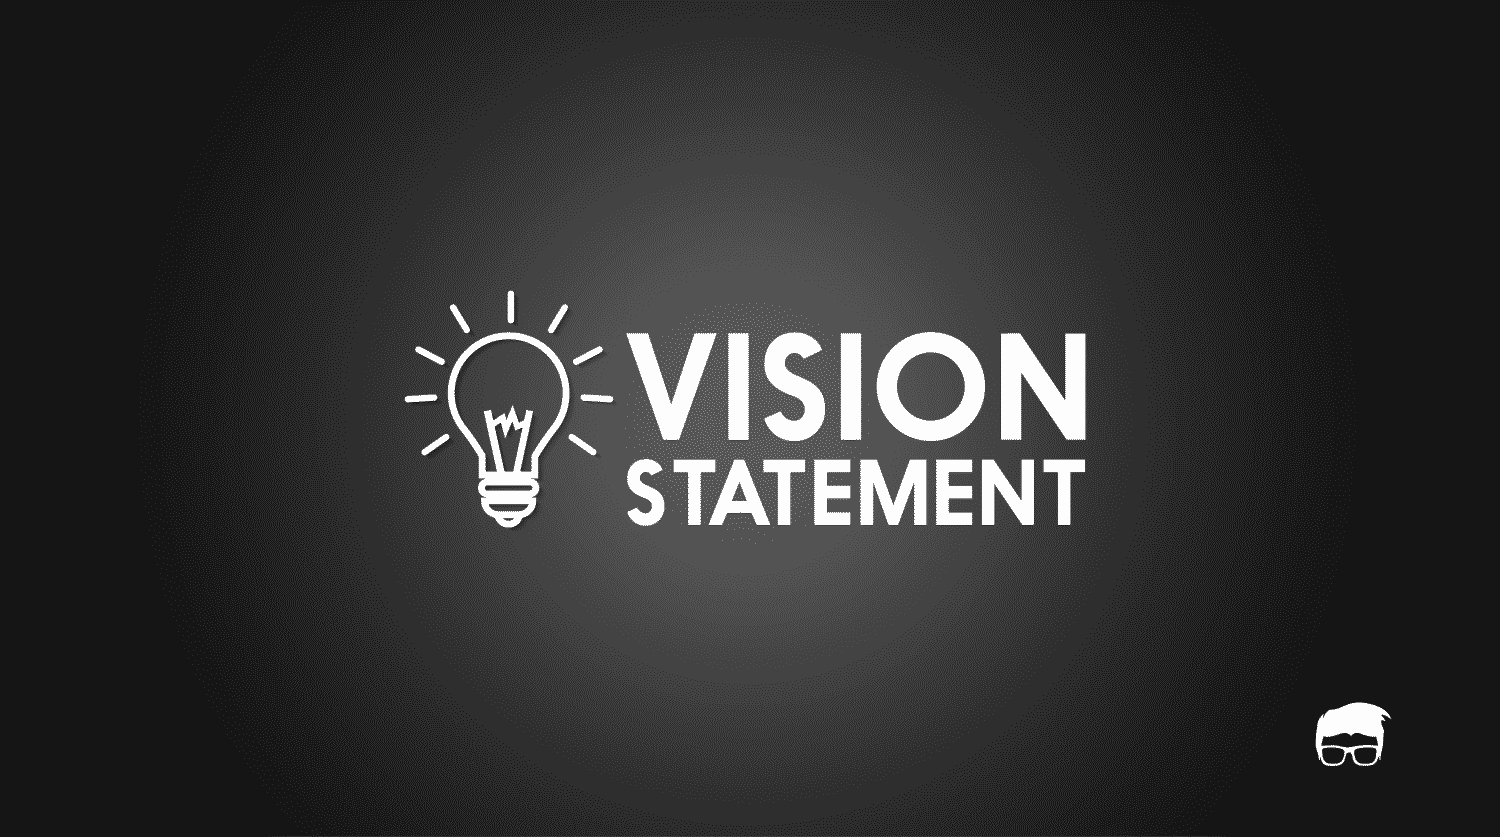 Elements of a mission statement